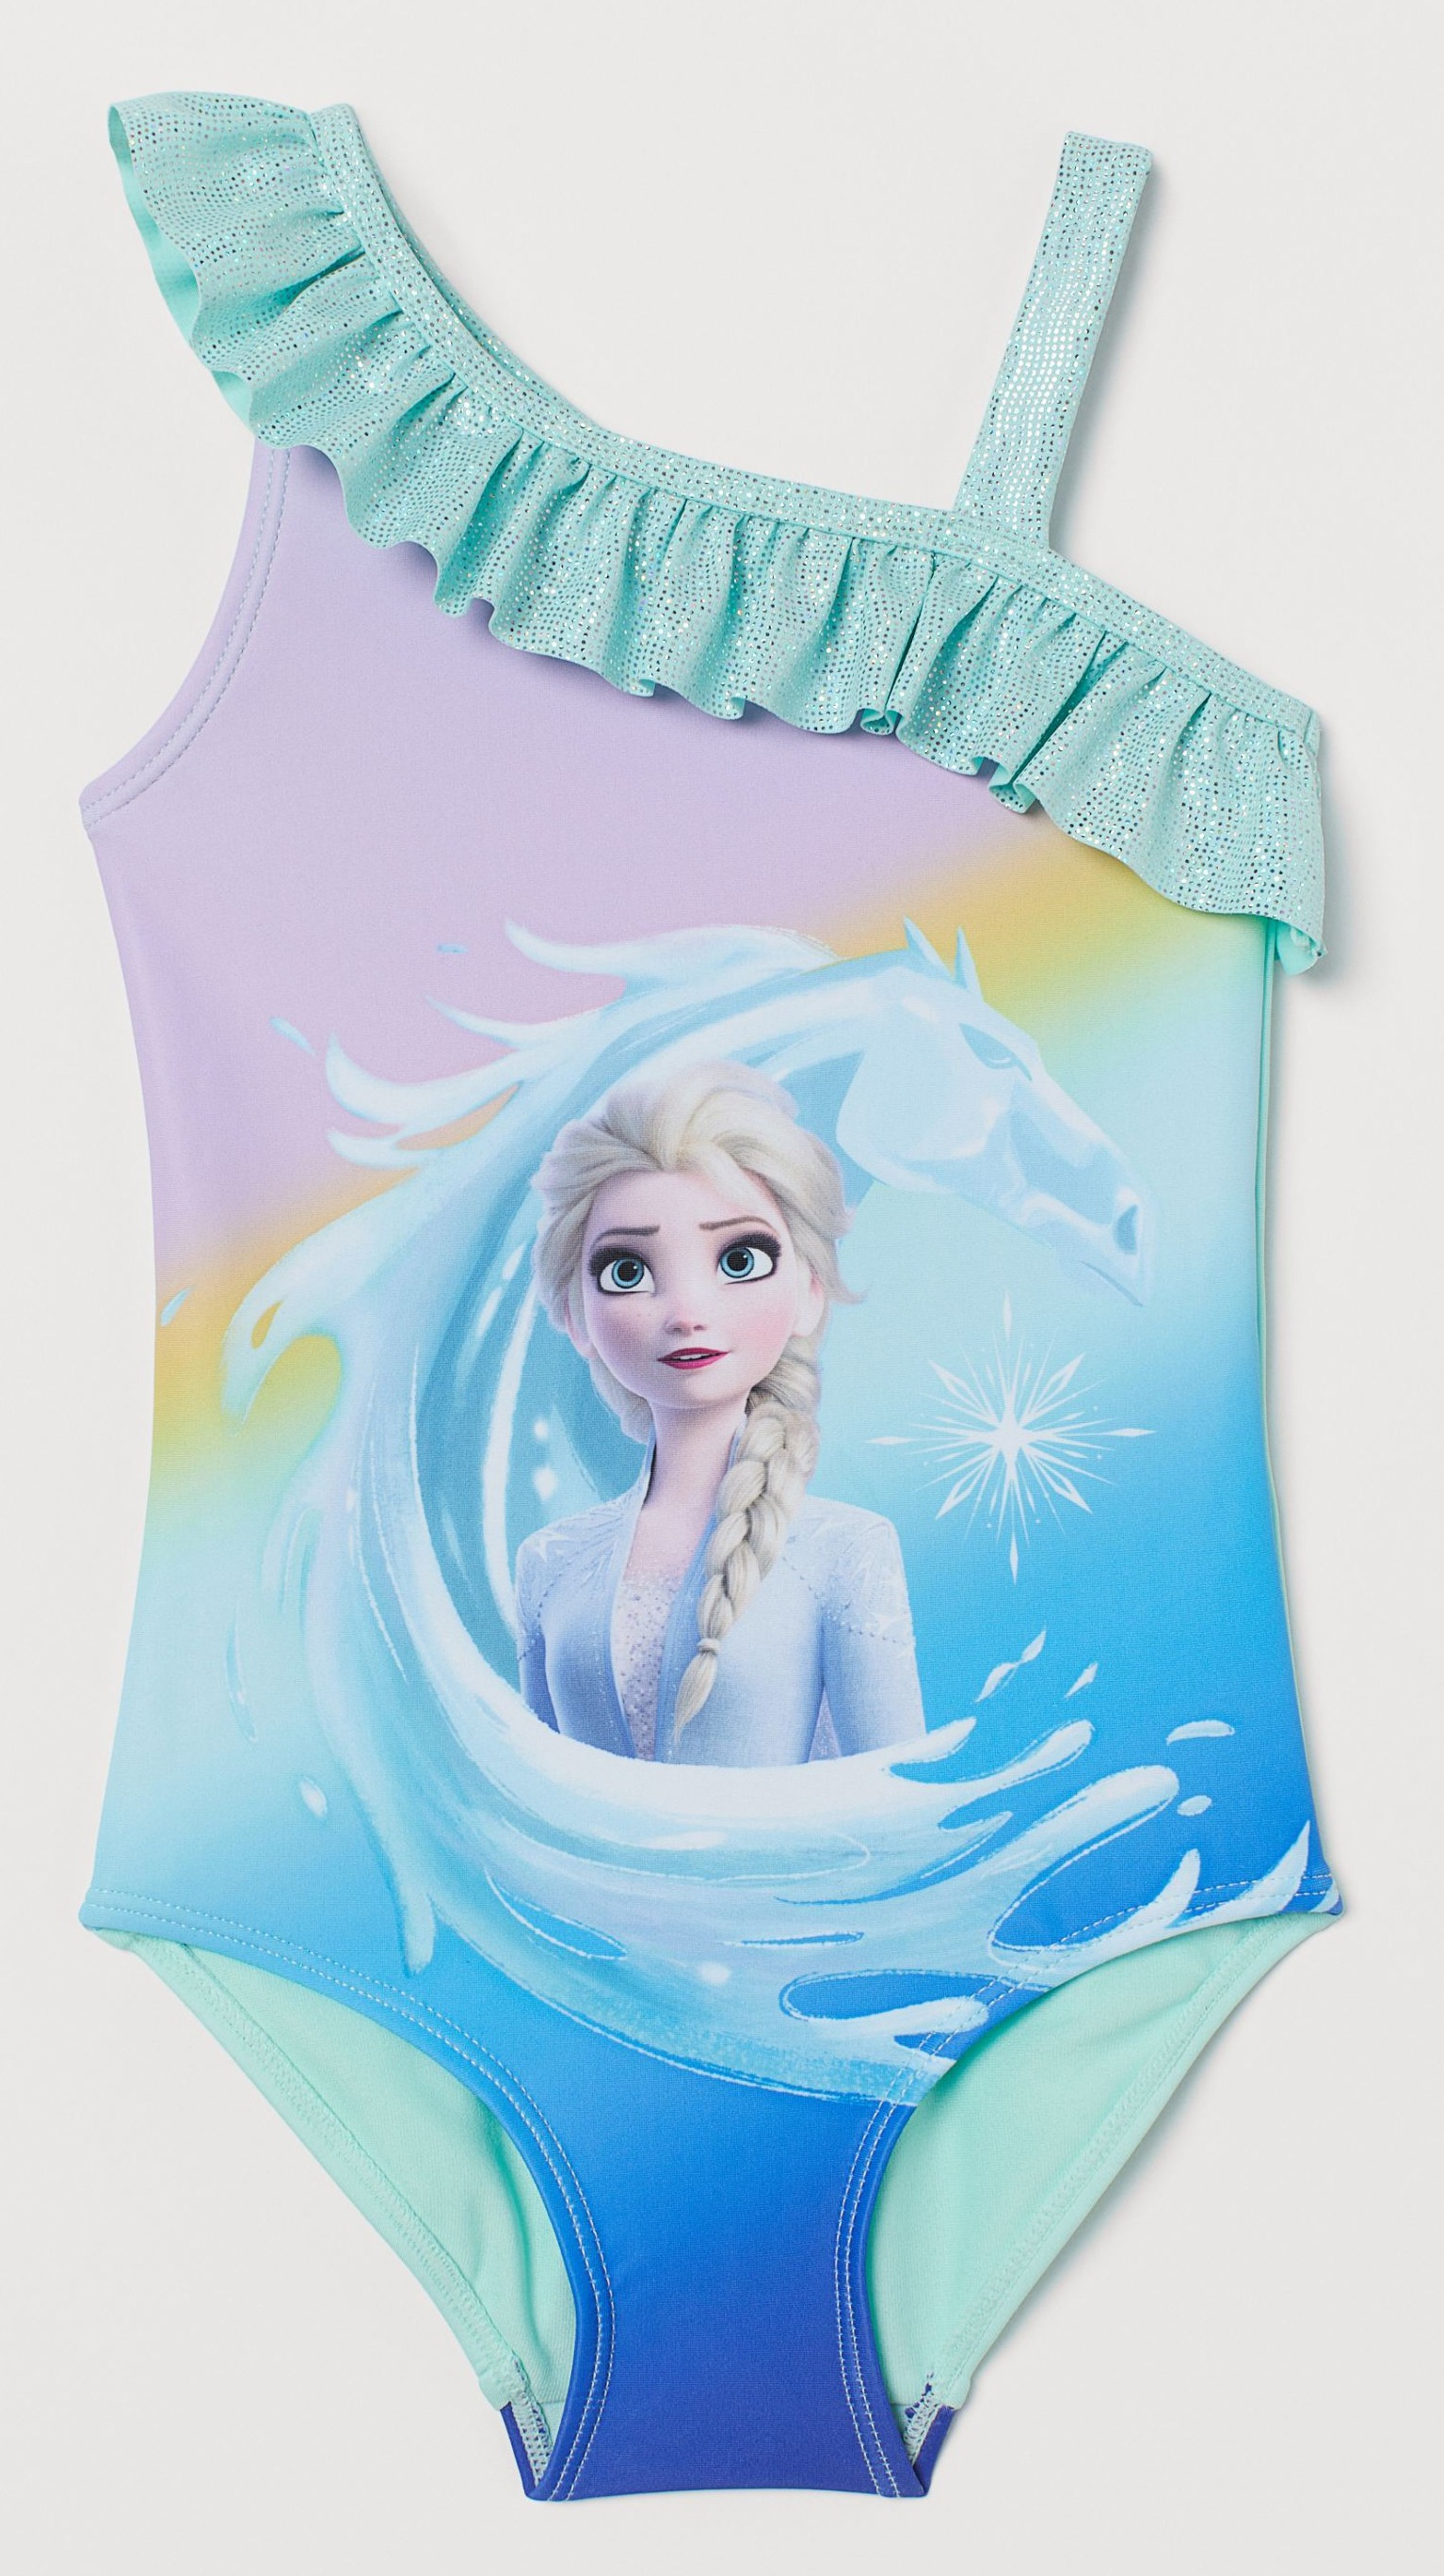 Kit your little Frozen fans out with a Frozen flounce-trimmed swimsuit, £9.99 at H&M